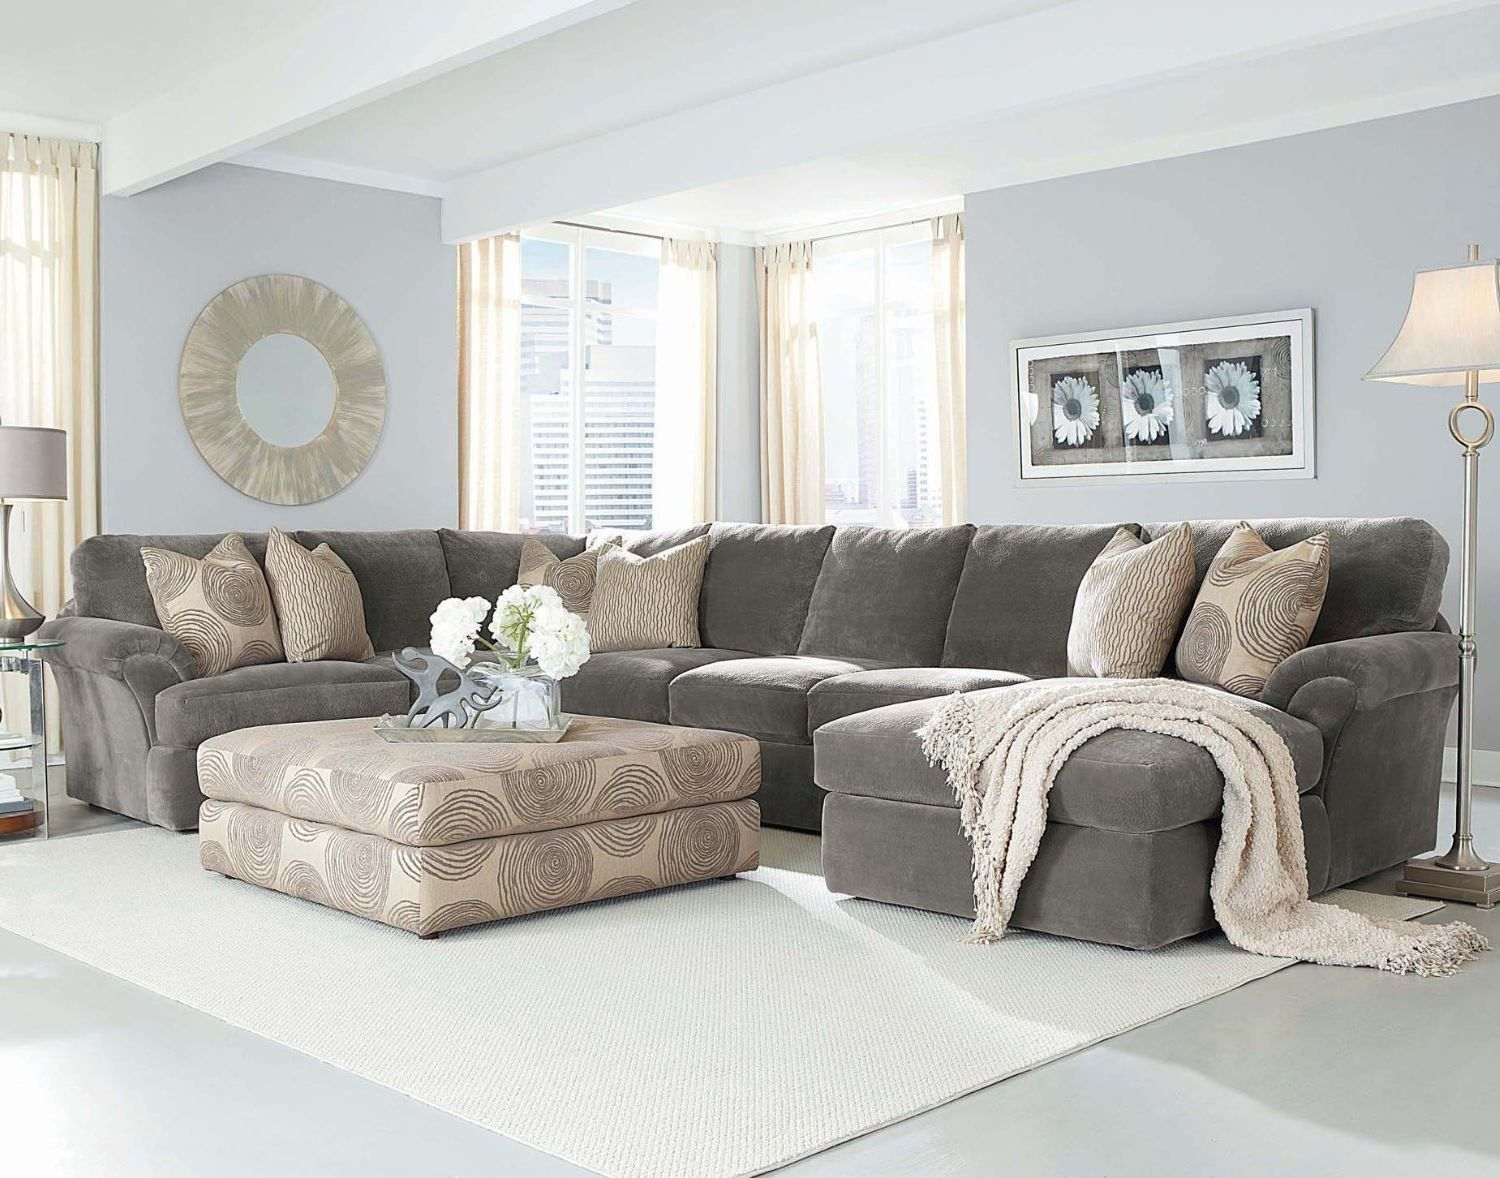 Best Chelsea Fabric Bradley Large Sectional In Light Home Grey Living Room Sectional Livingroom 400 x 300